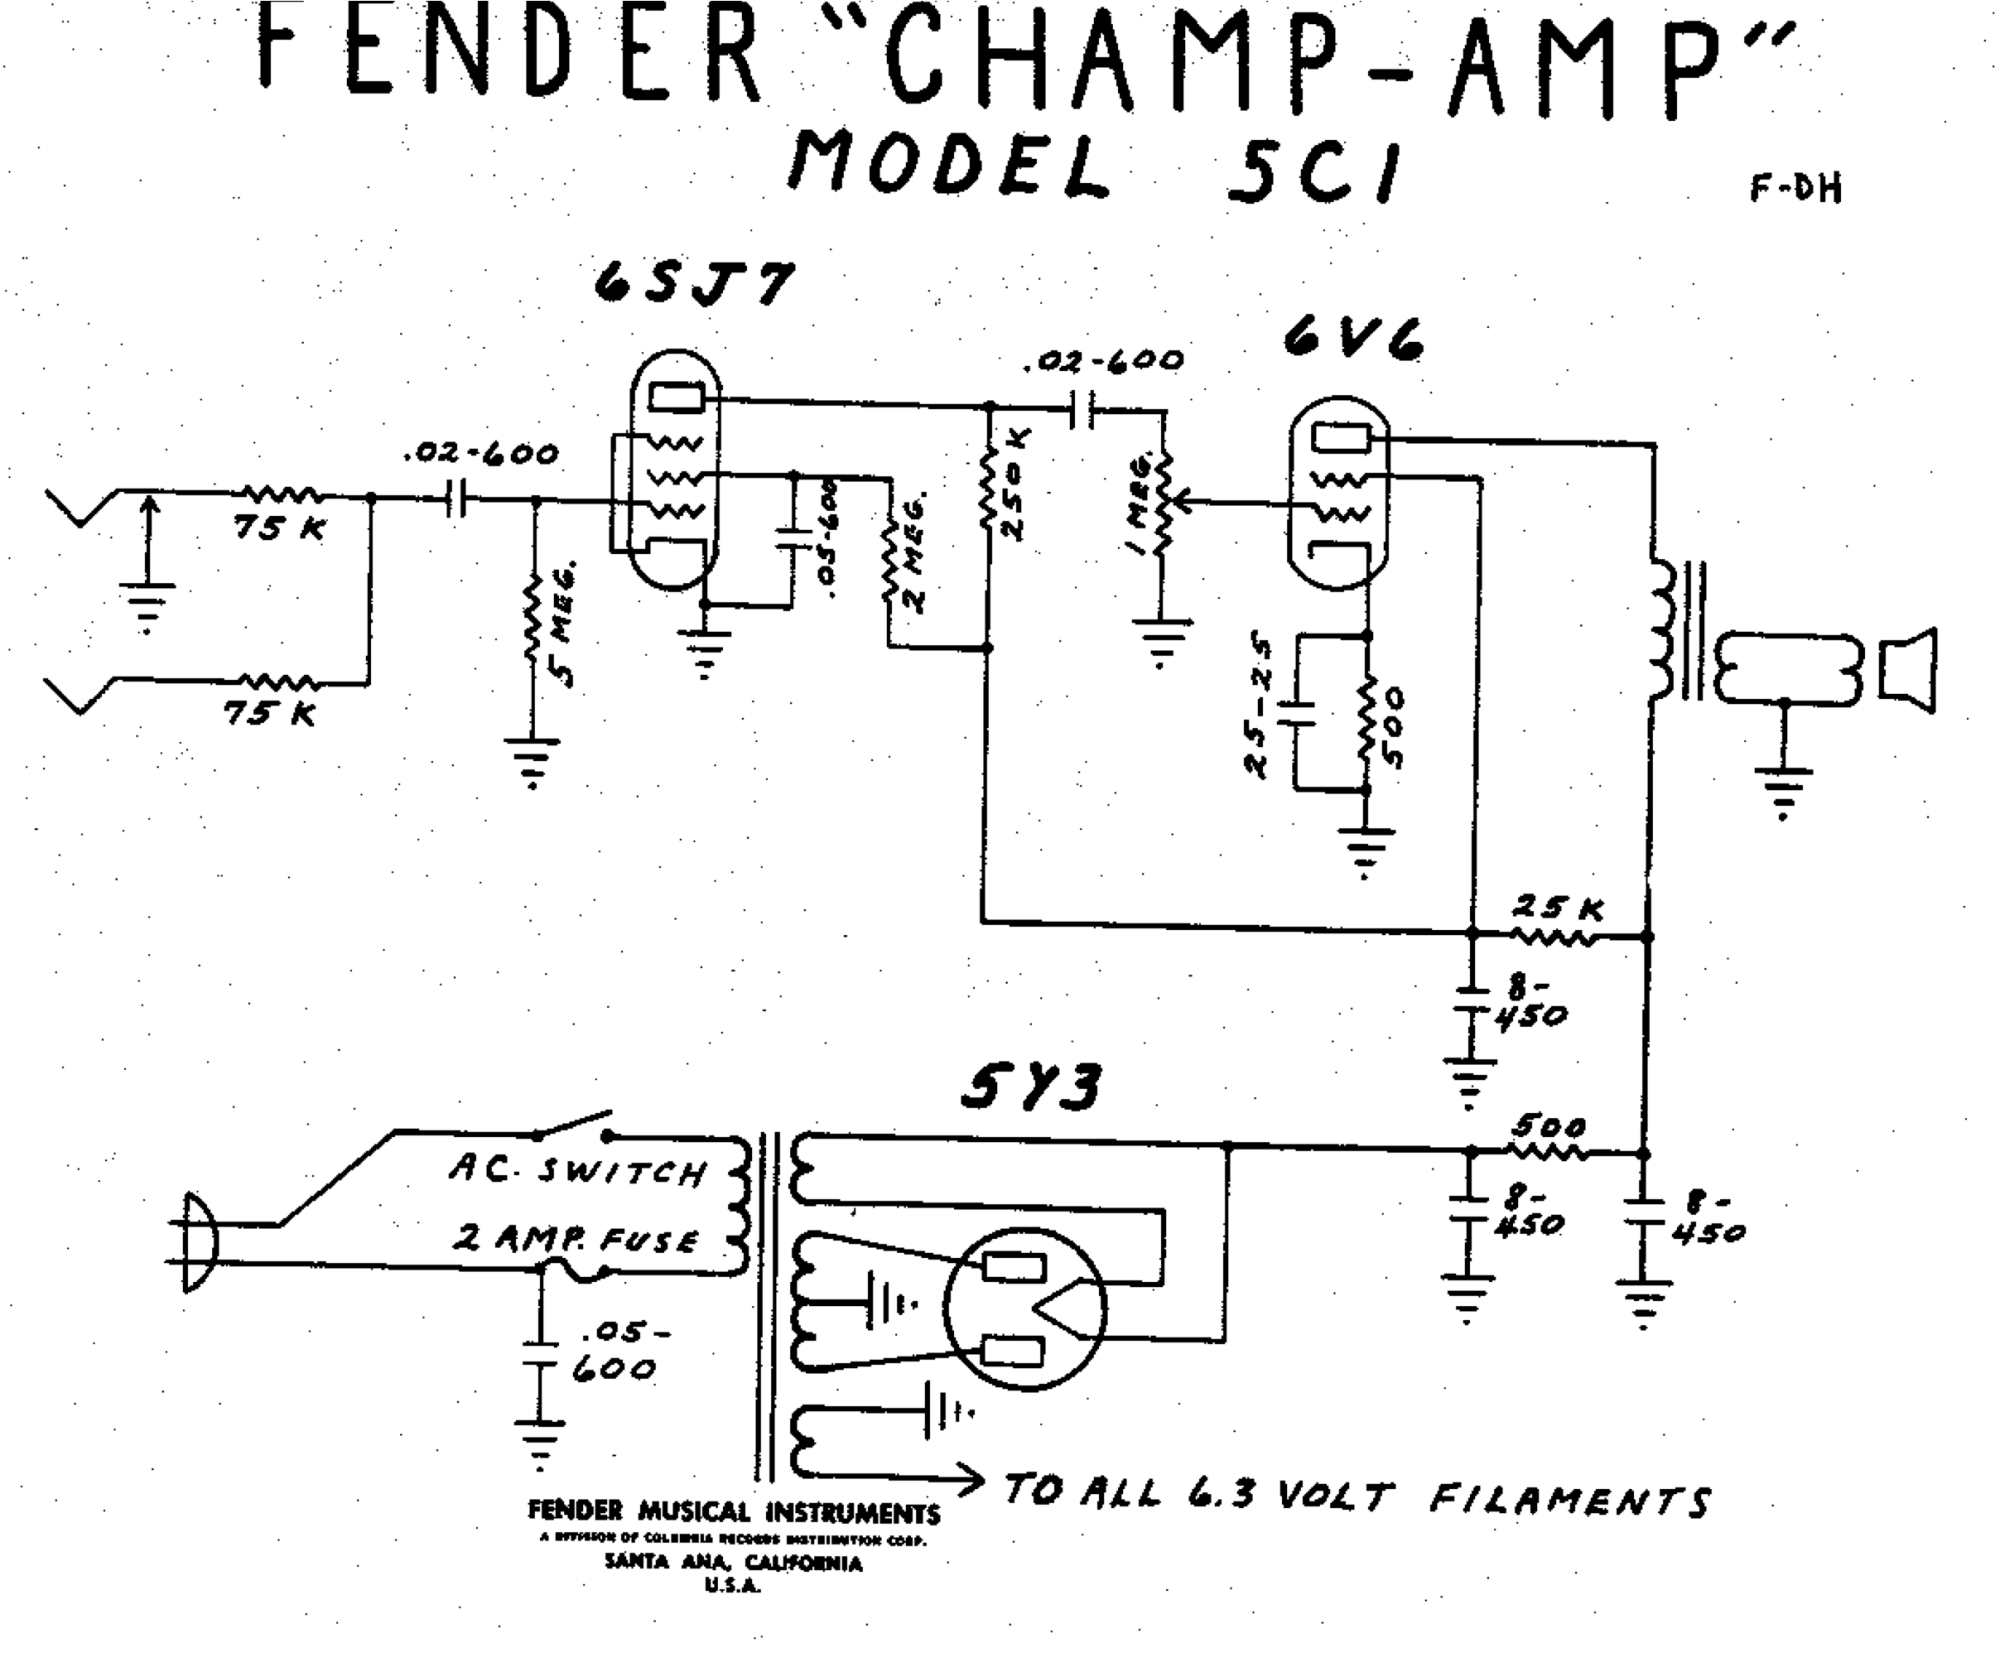 hight resolution of wiring diagram 5c1 tweed fender champ